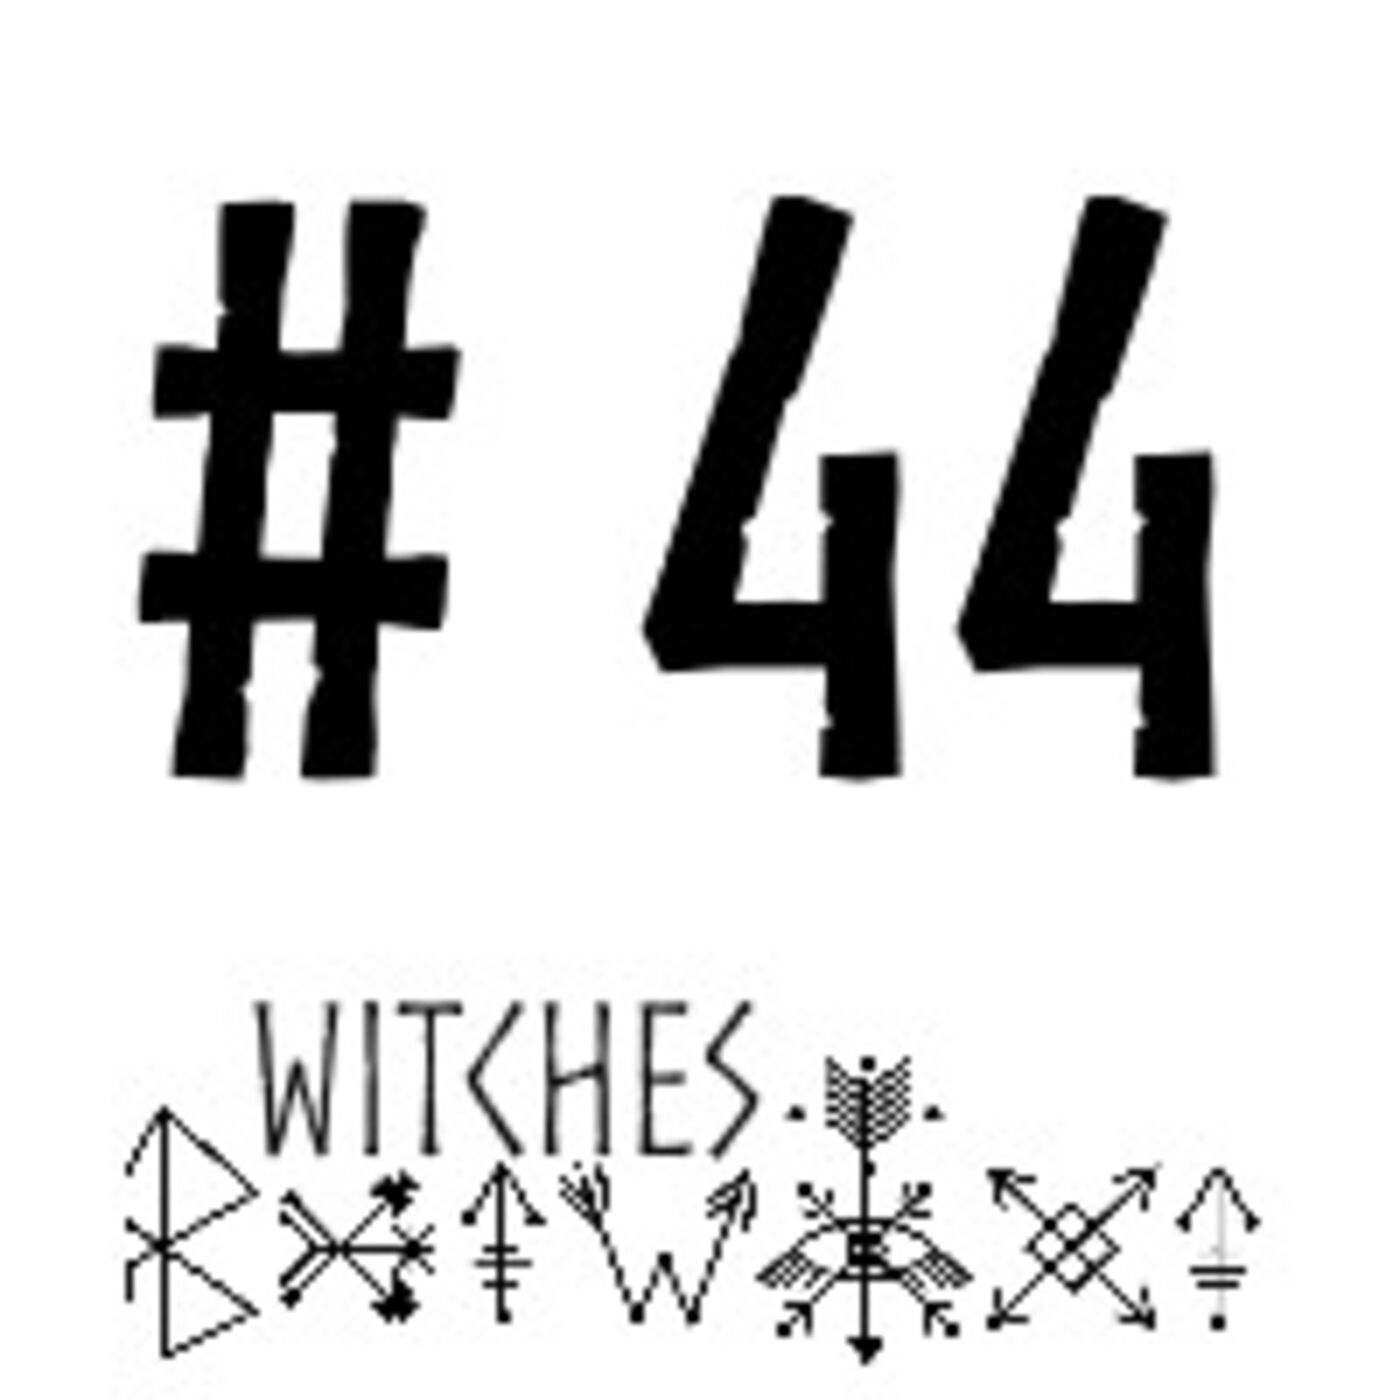 WBTEXT EP #44 - Witchcraft in Pop Culture: The Chilling Adventures of Sabrina Seasons 2 & 3